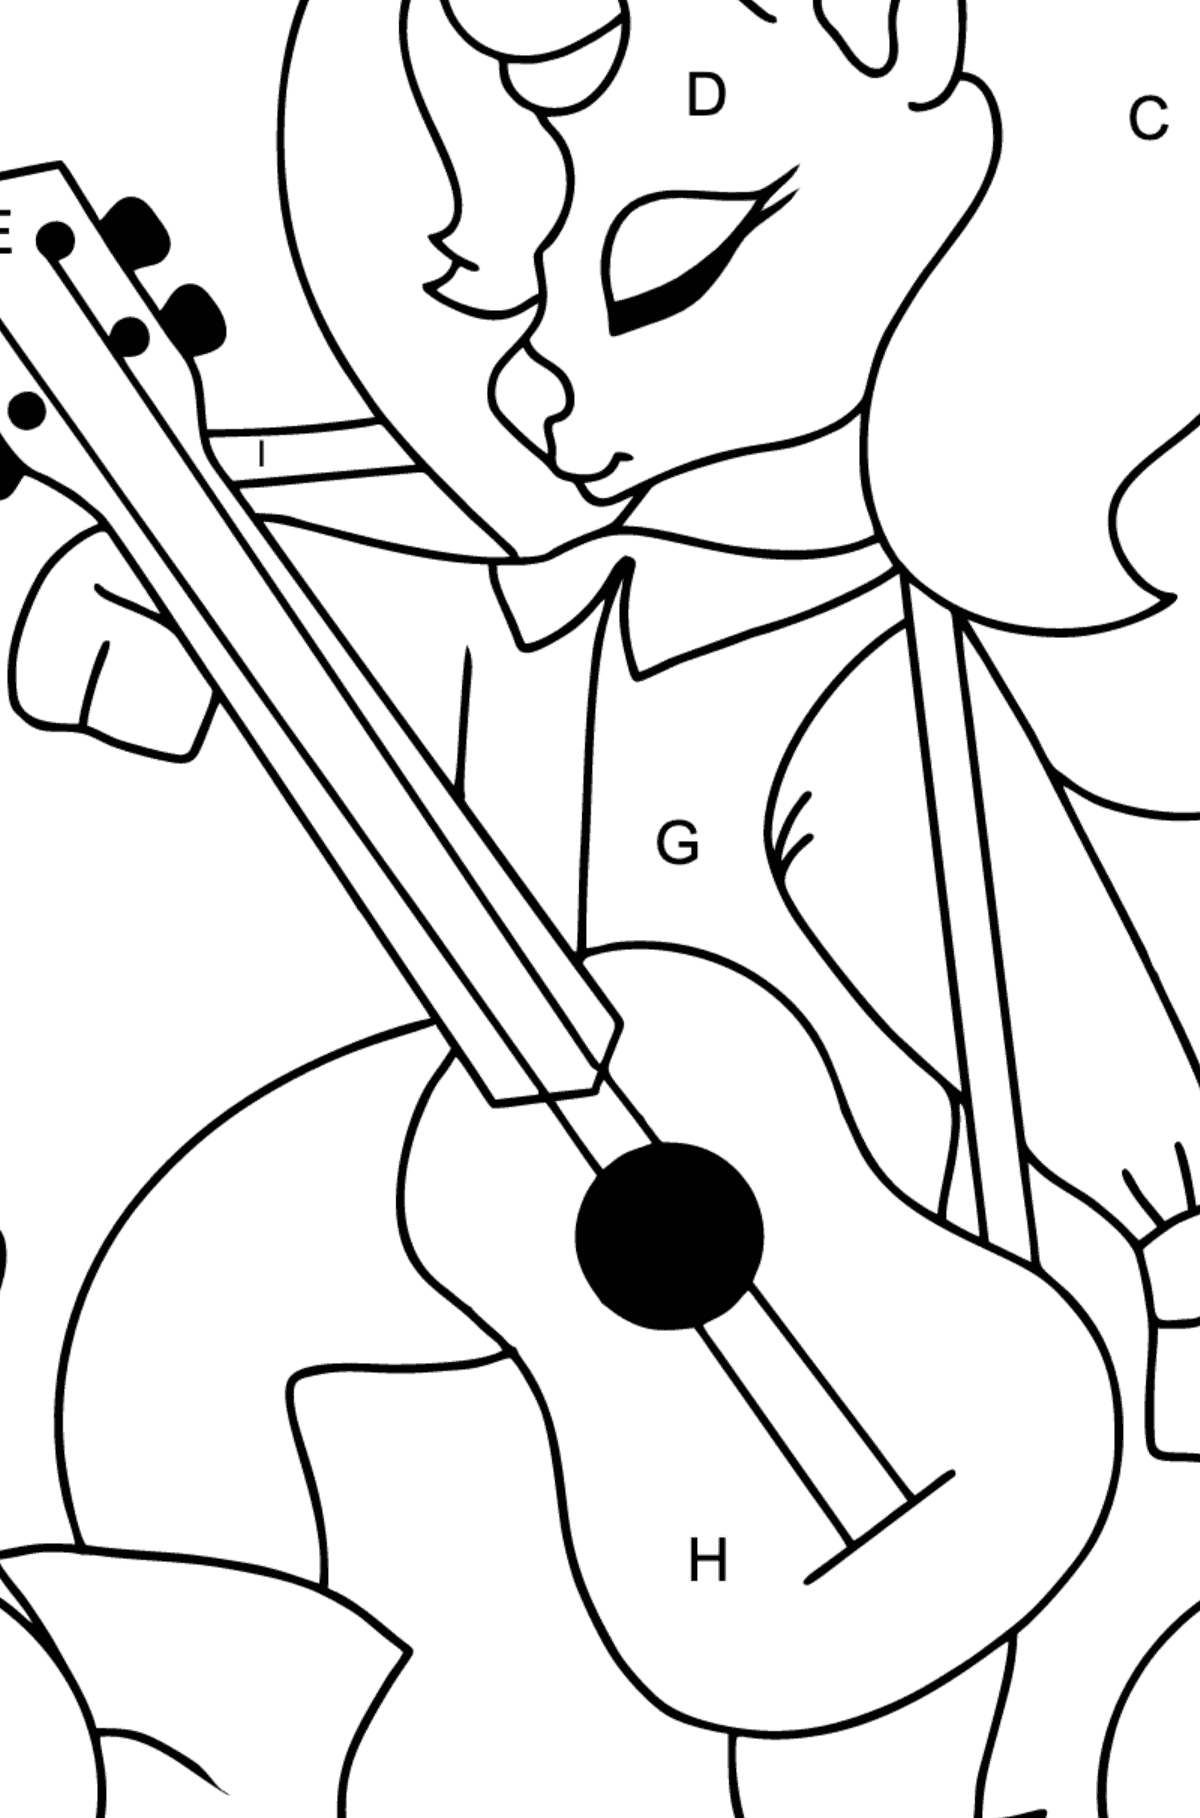 Simple Coloring Page - A Unicorn with a Guitar for Children  - Color by Letters